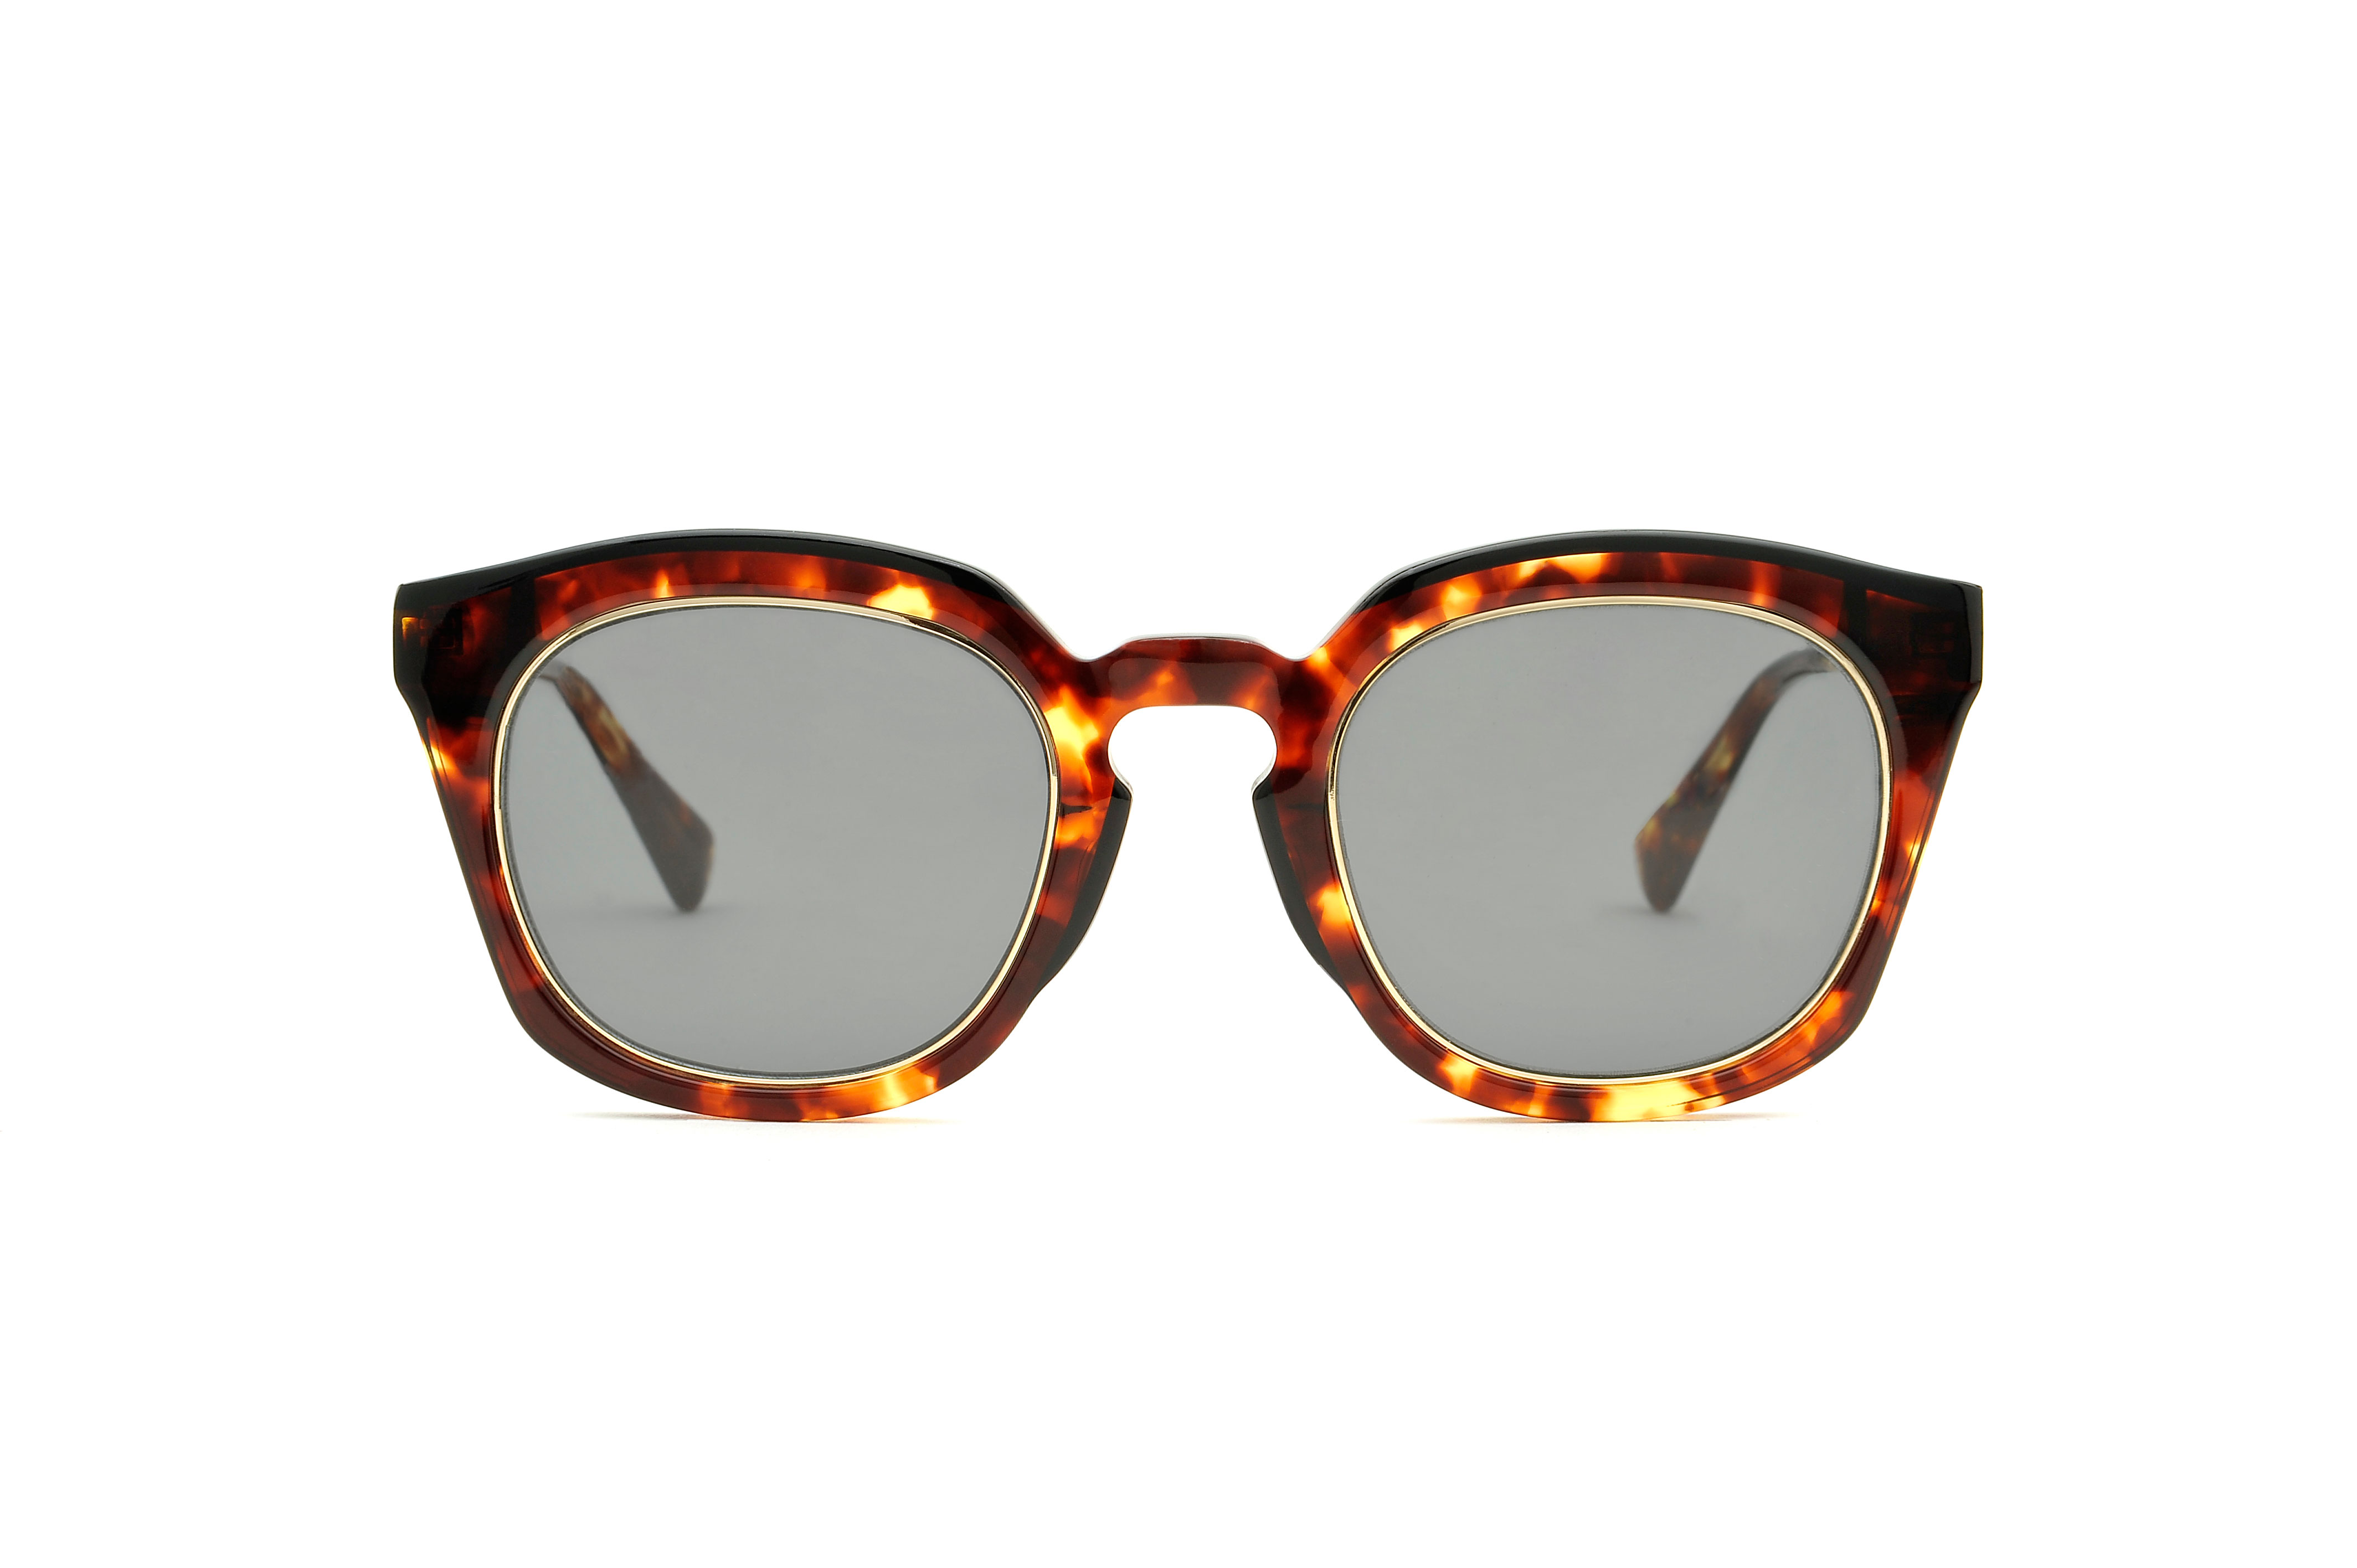 Thierry acetate squared tortoise sunglasses by GIGI Studios